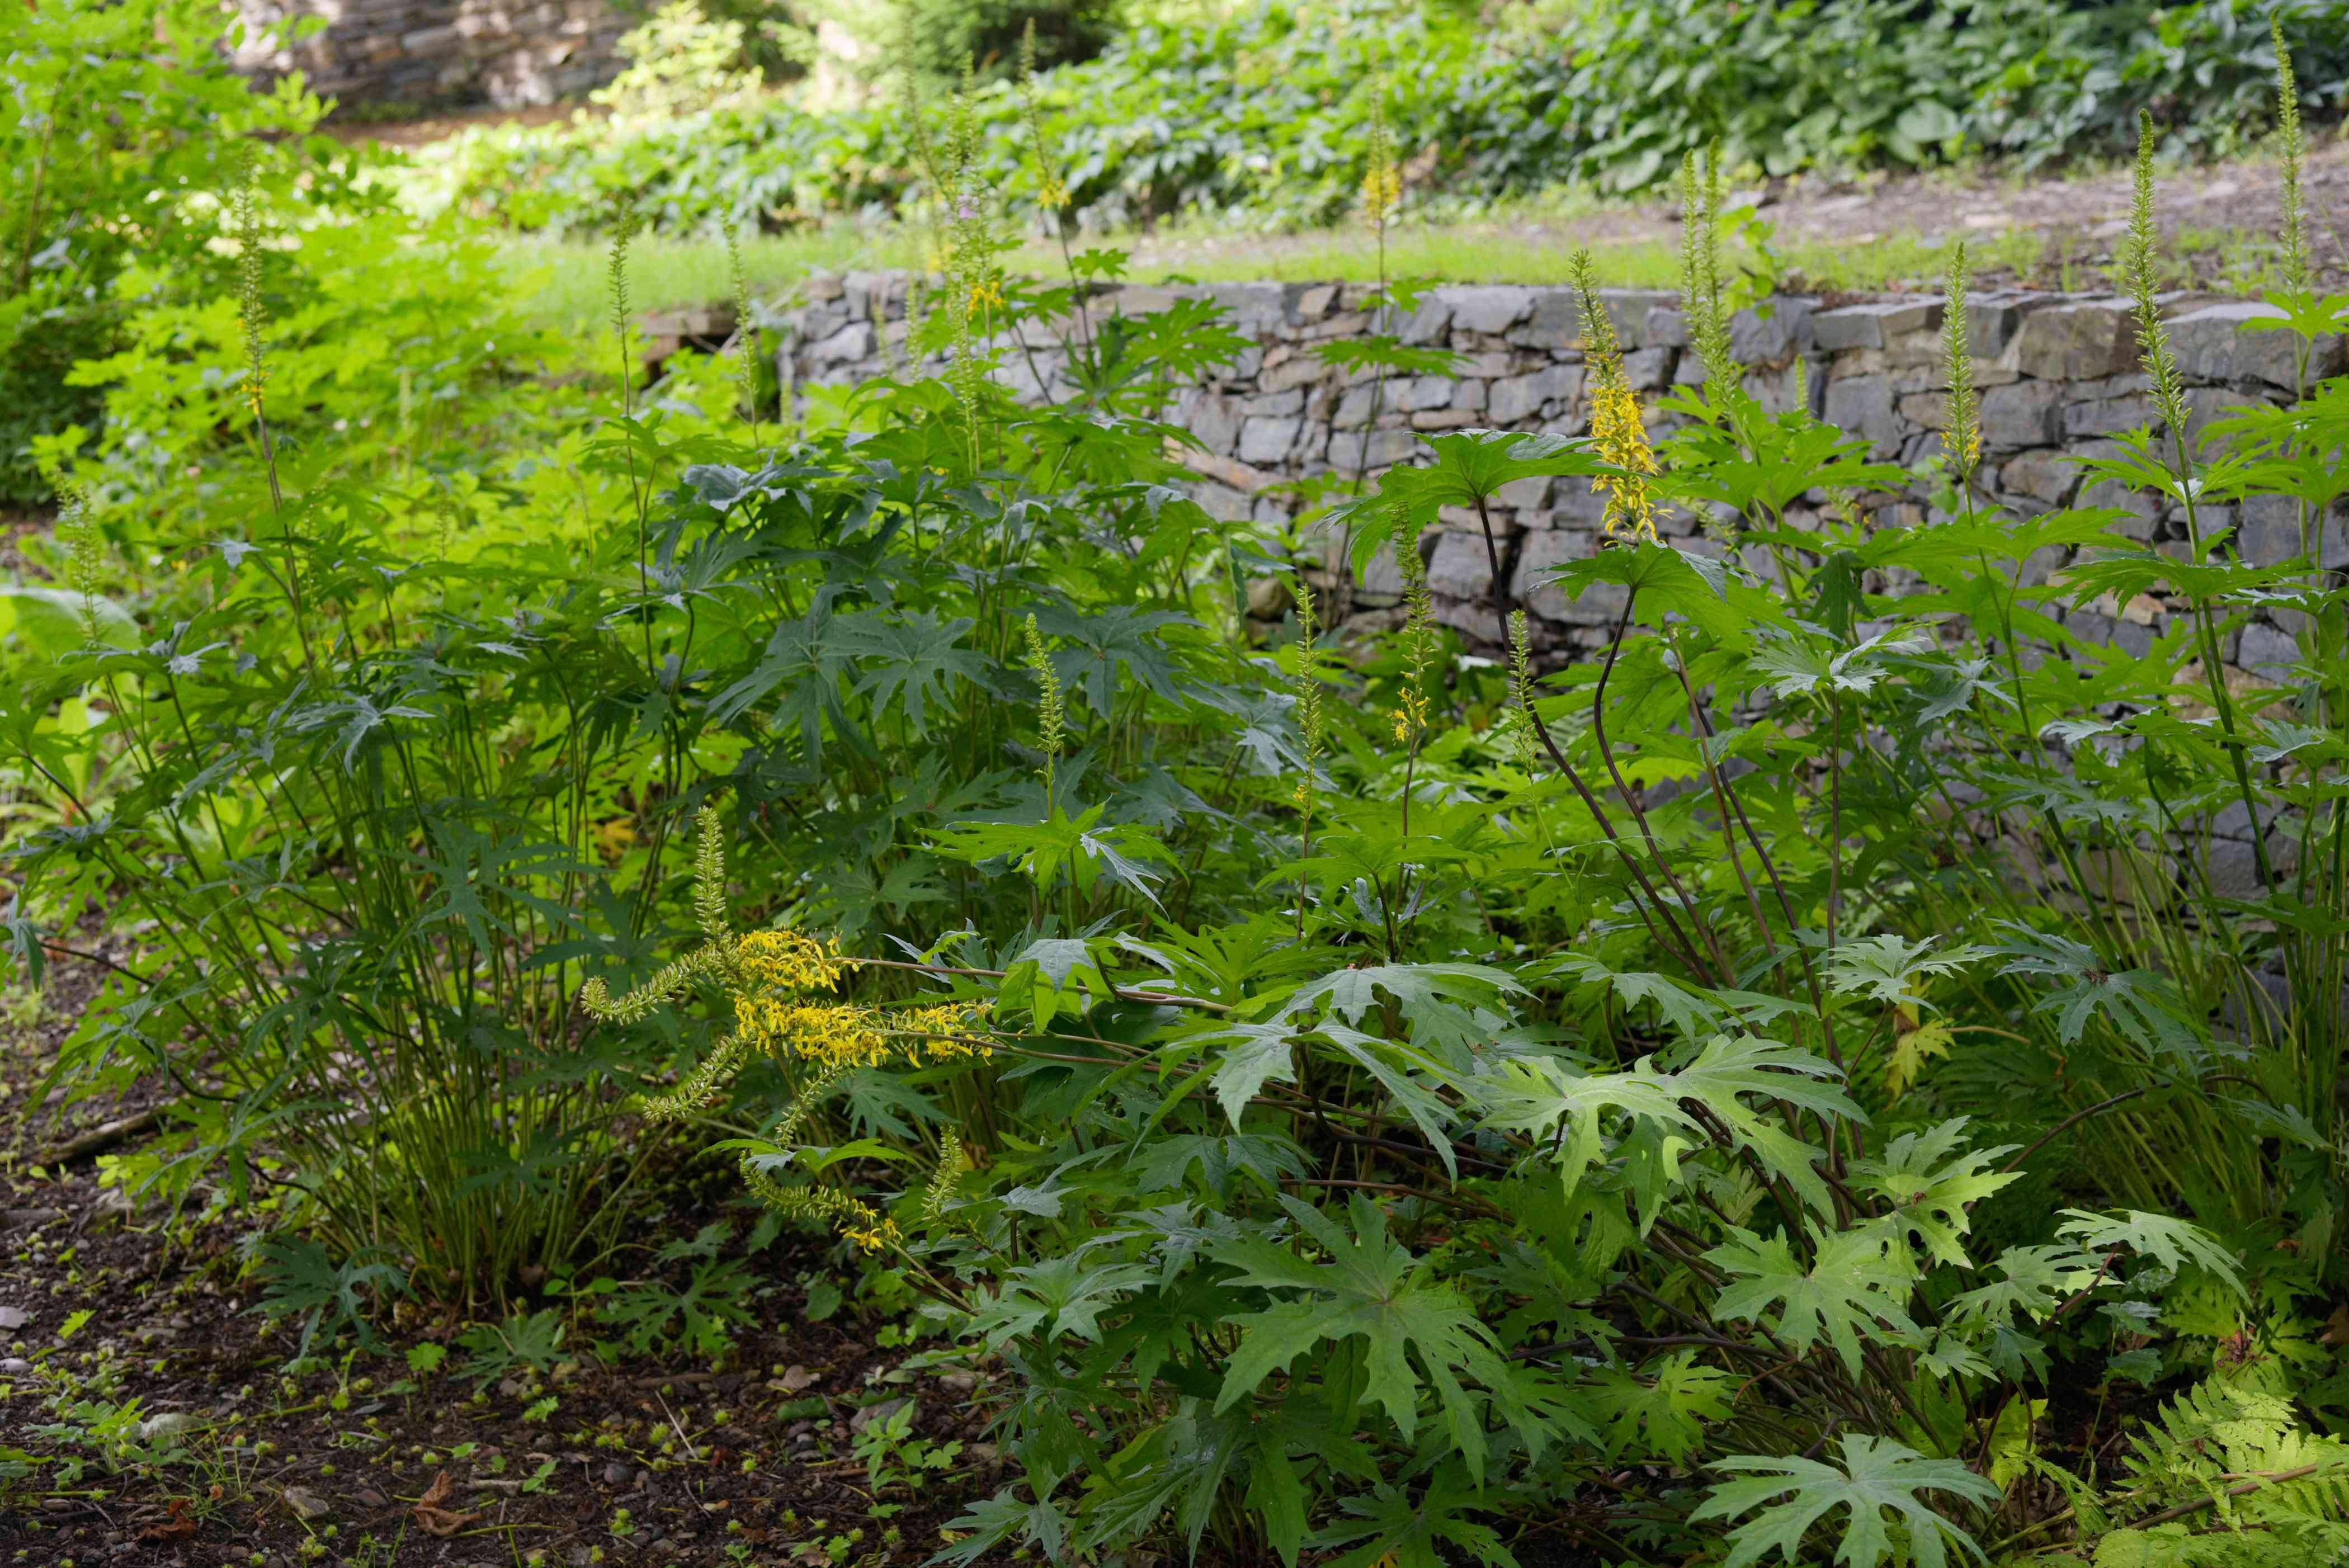 Leopard 'The Rocket' plant with small golden flower clusters surrounded by deep-green serrated foliage